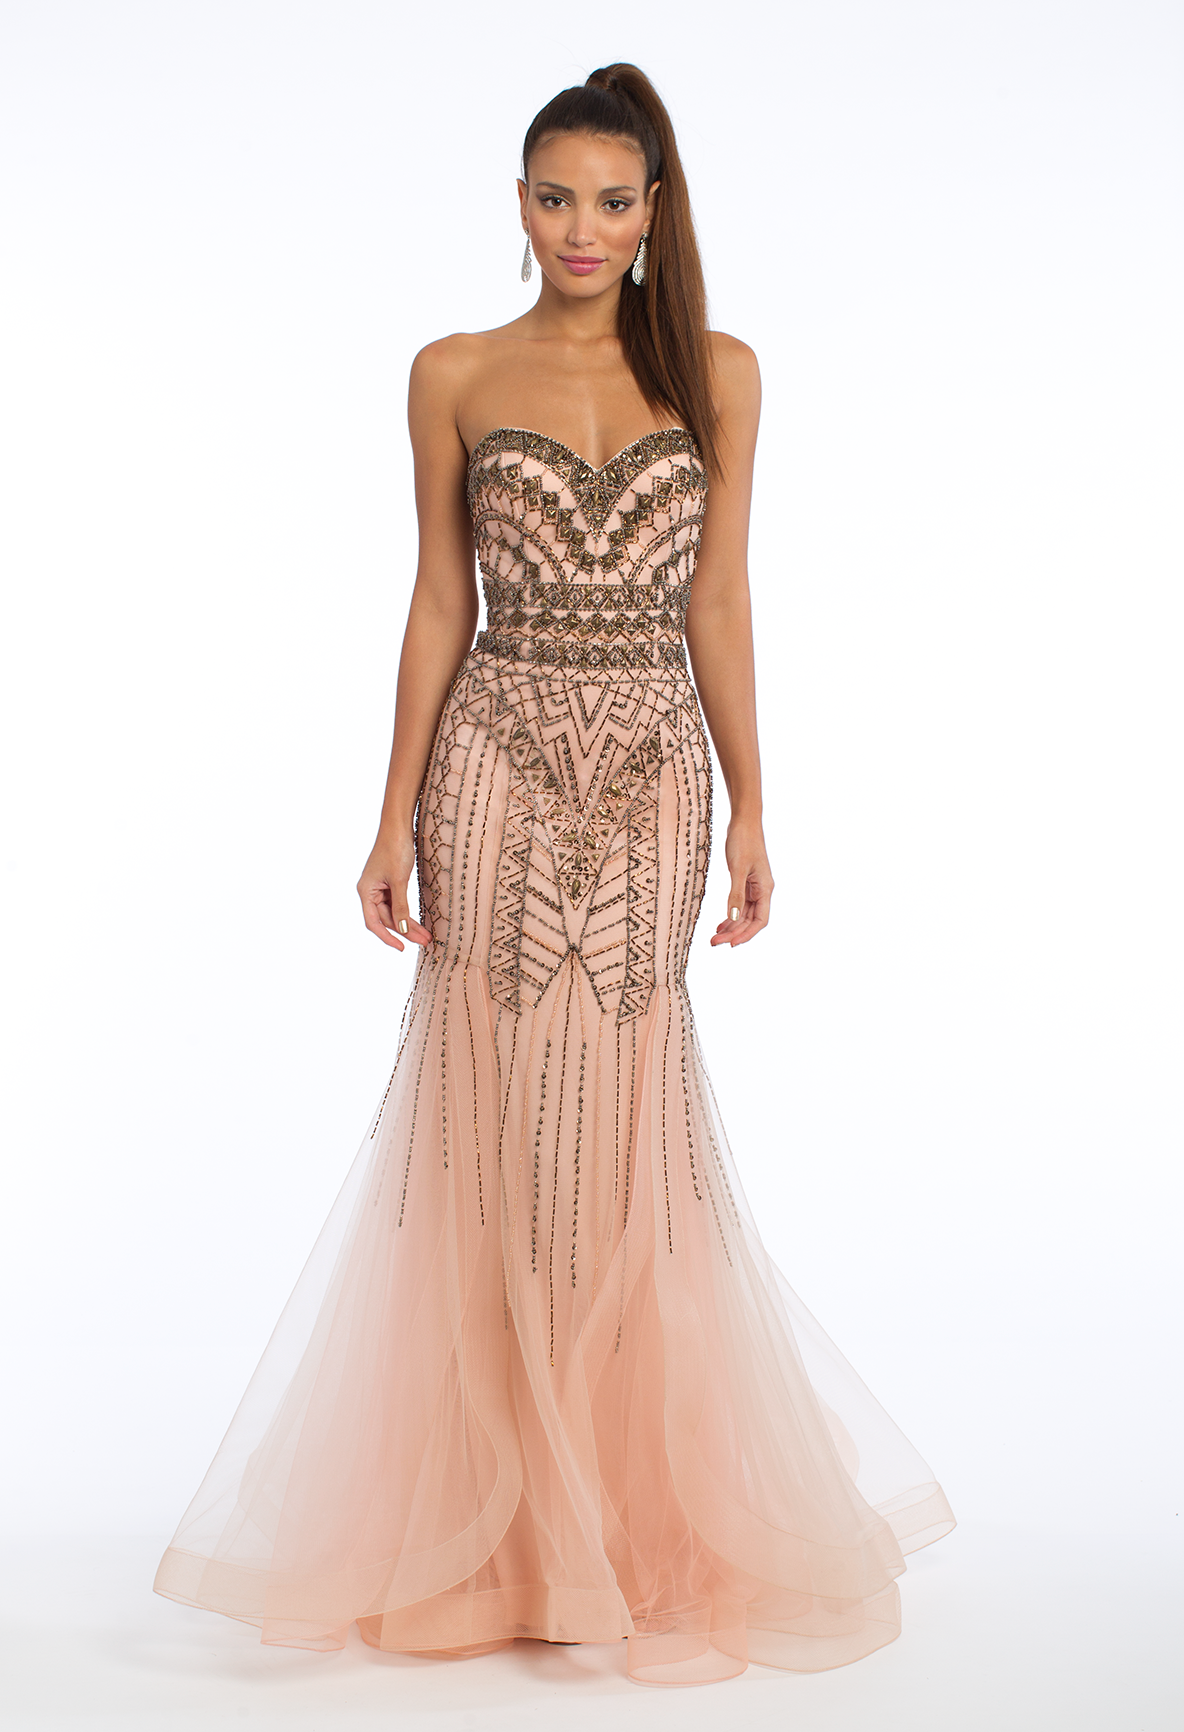 Walk in looking like a goddess in this formal evening gown! With its ...